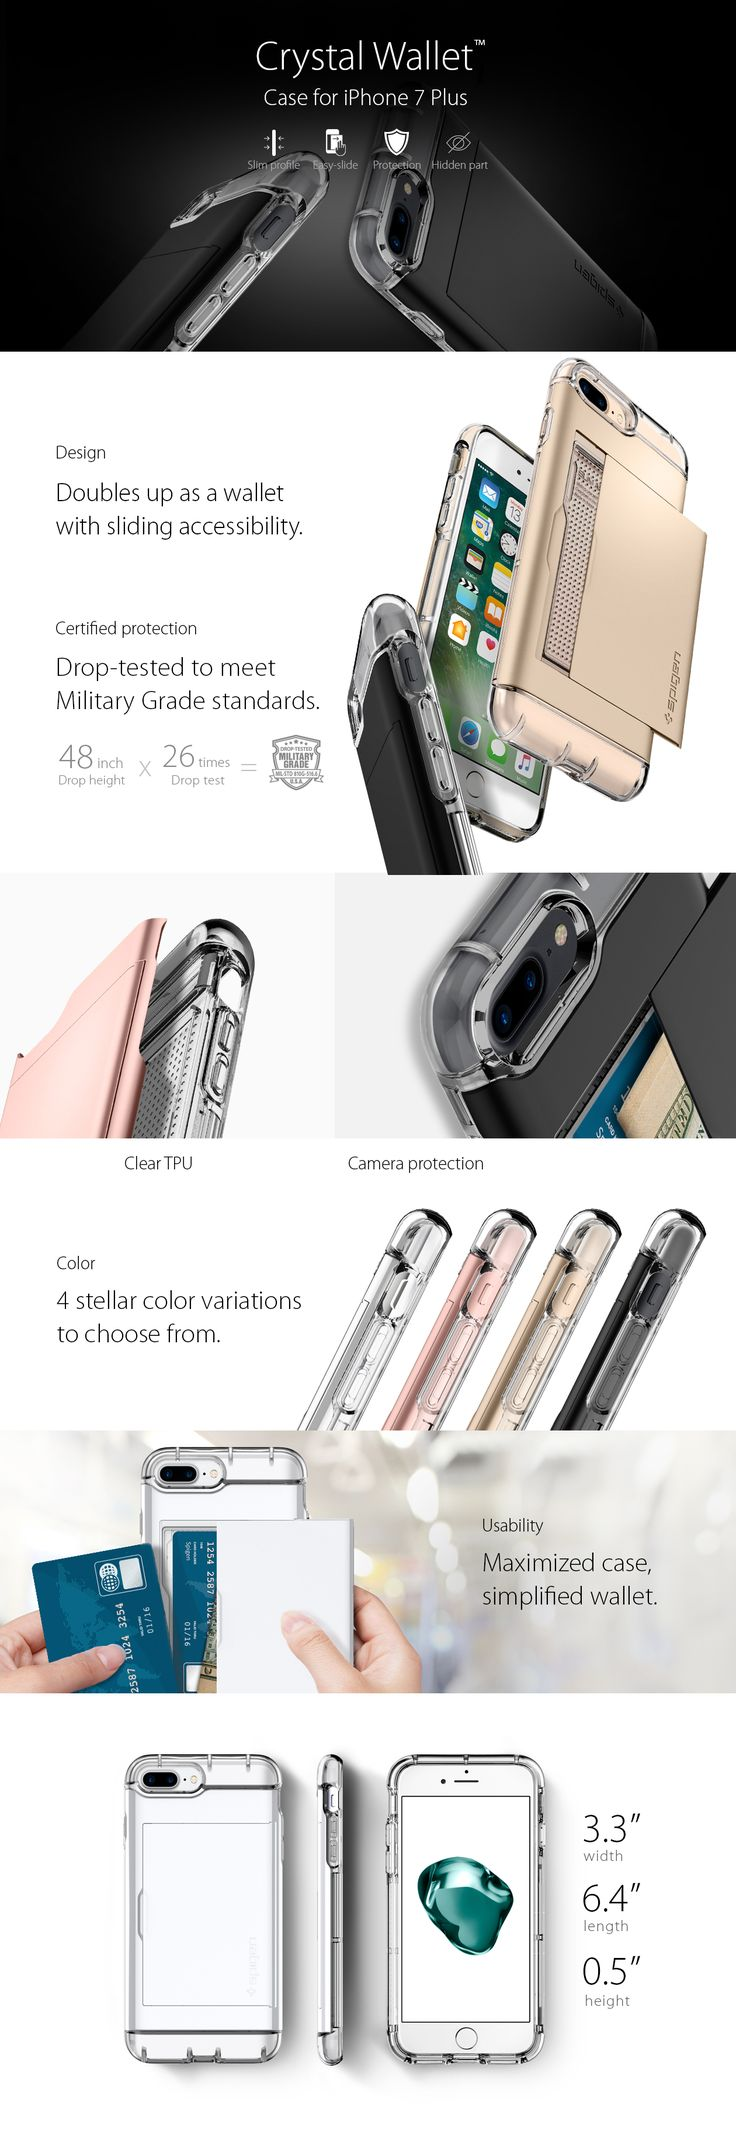 Simplify your shopping essentials with the new Spigen Crystal Wallet without sacrificing anounce of protection and style! Enjoy the latest, patent pending clea